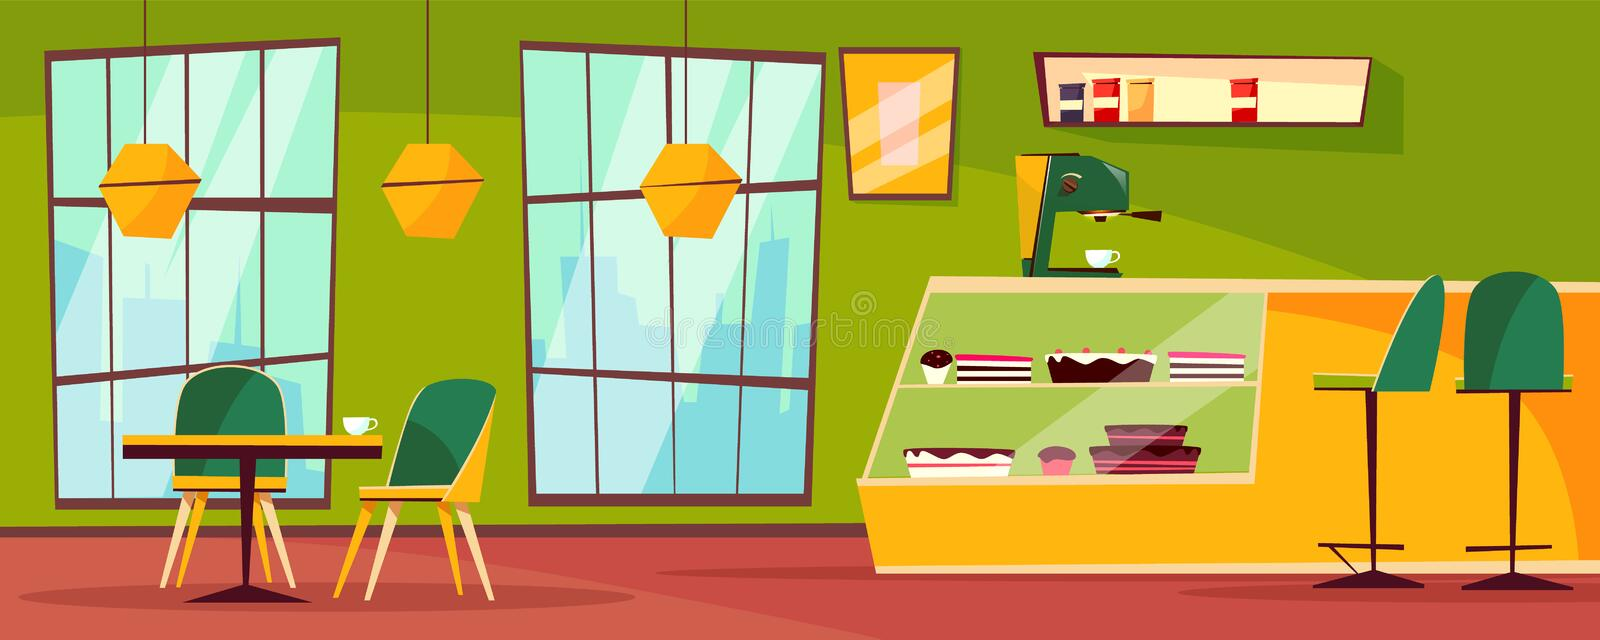 Cafe or cafeteria interior vector cartoon illustration stock illustration